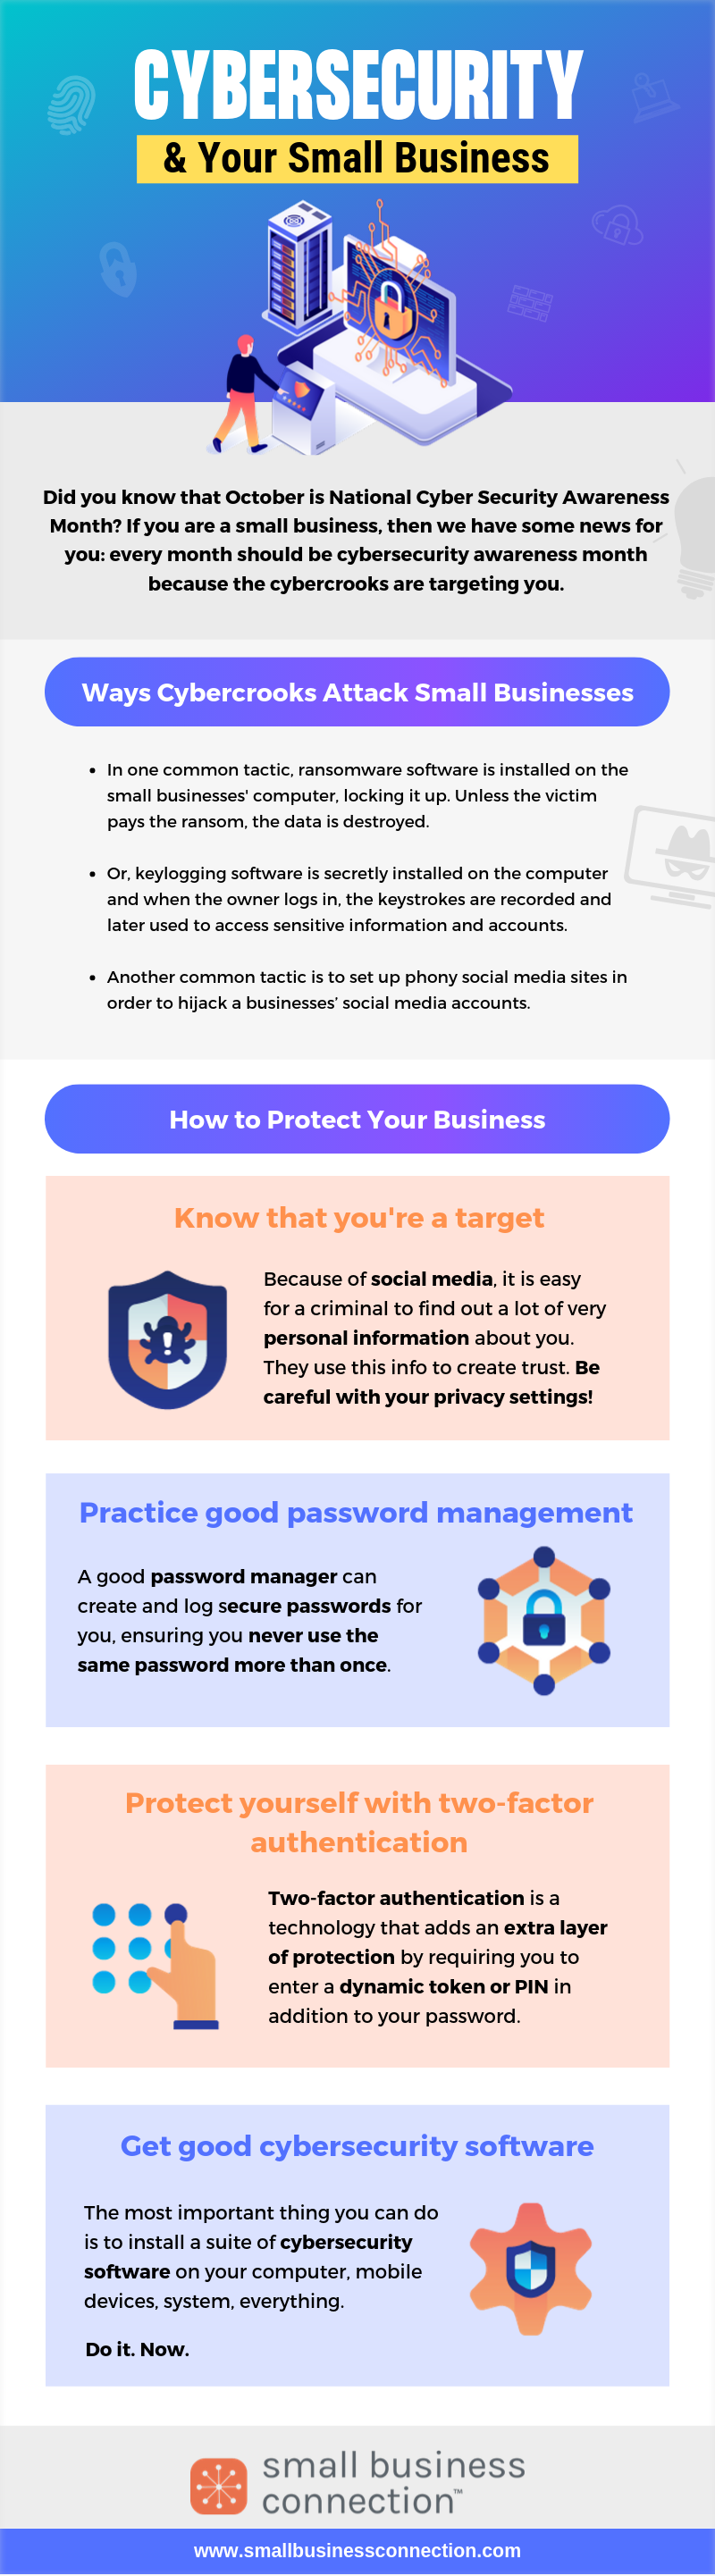 Infographic: Cyber Security & Your Small Business